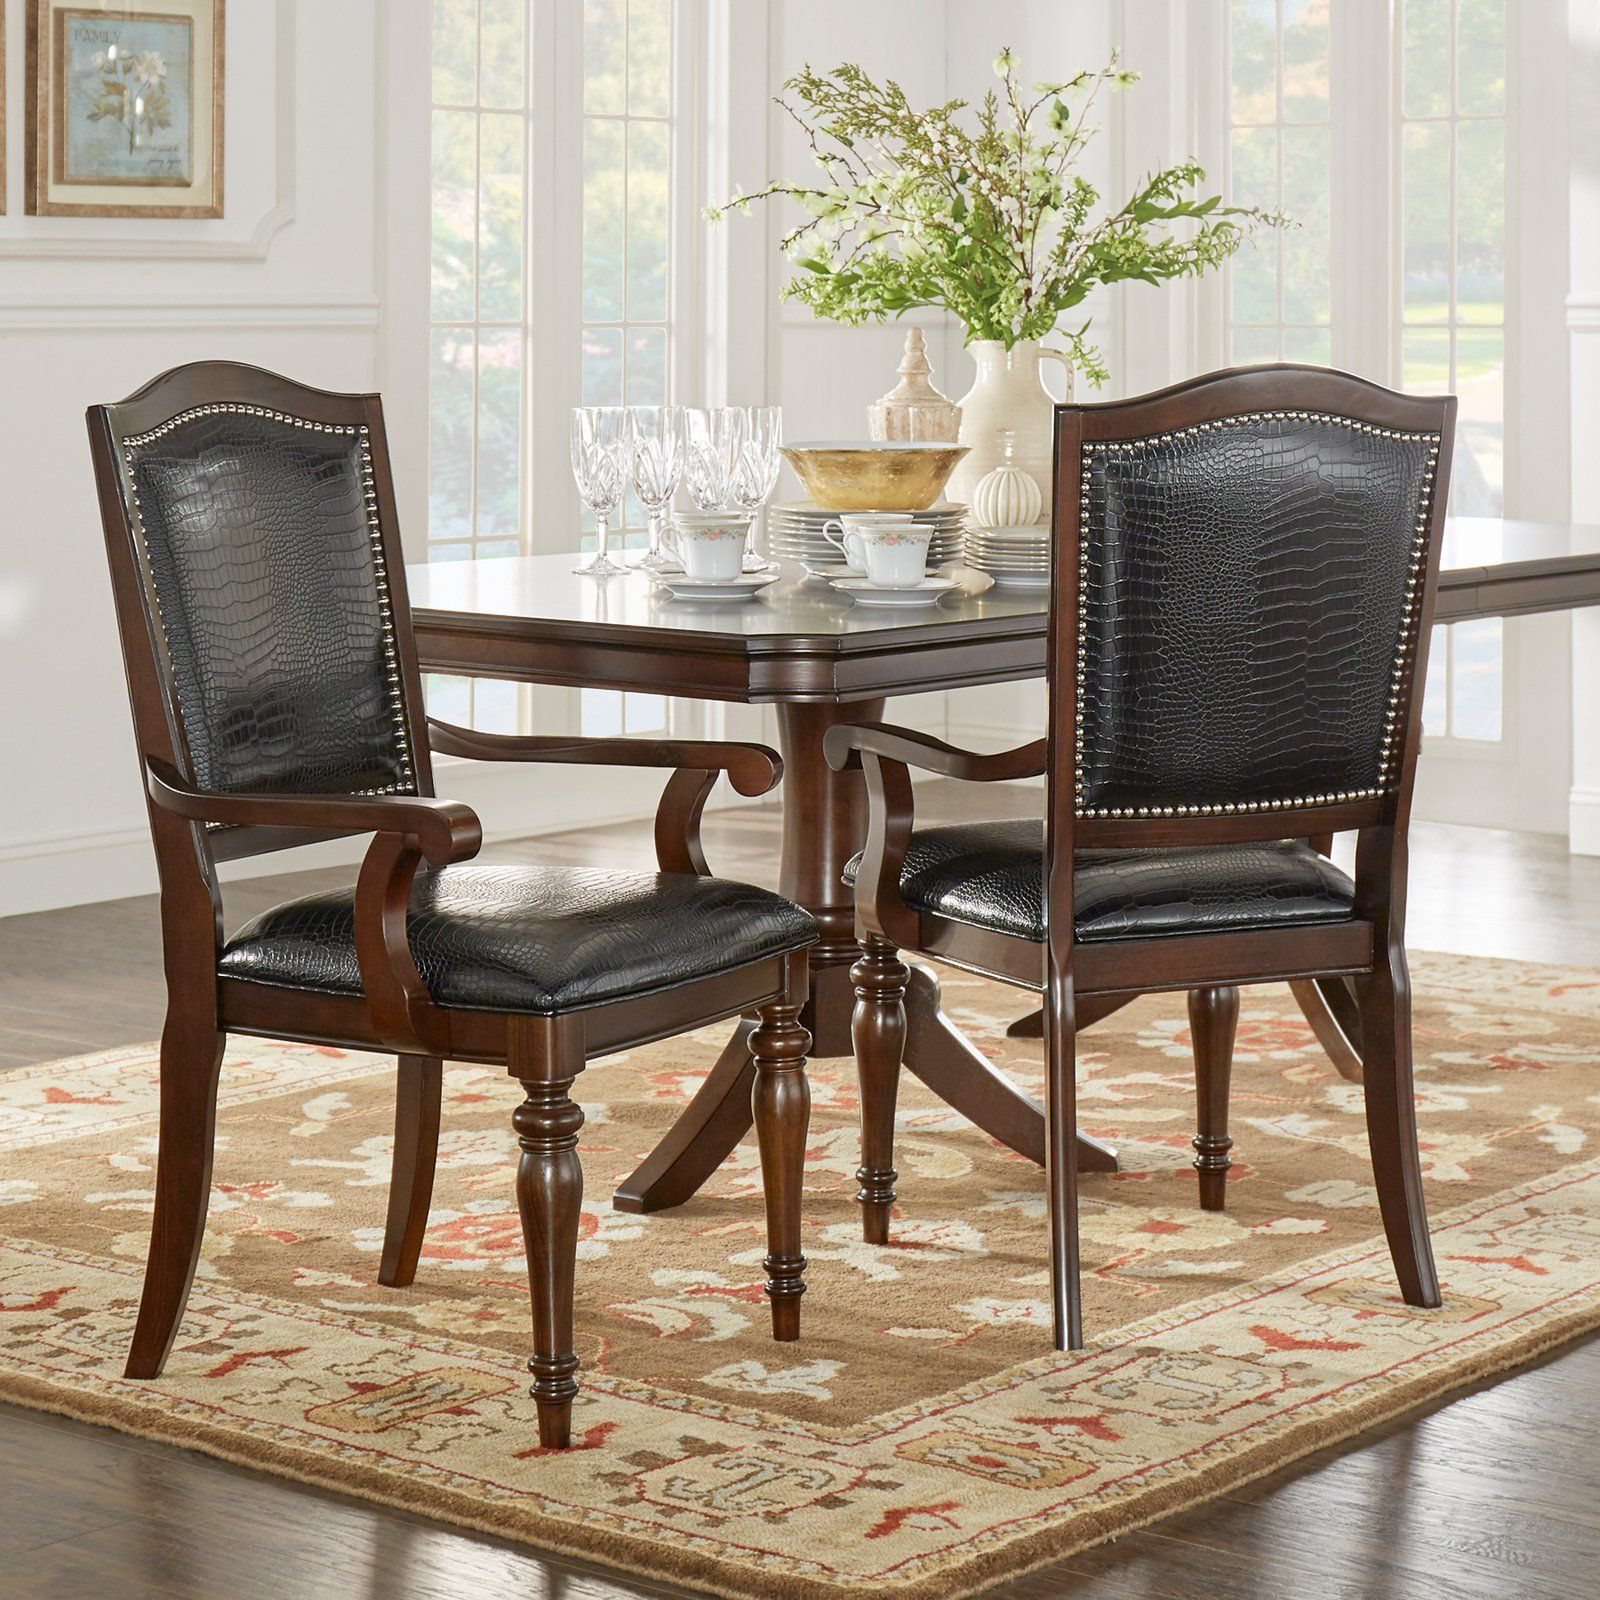 Leather Dining Chairs With Nailheads Homelegance Marston Alligator Faux Leather Nailhead Dining